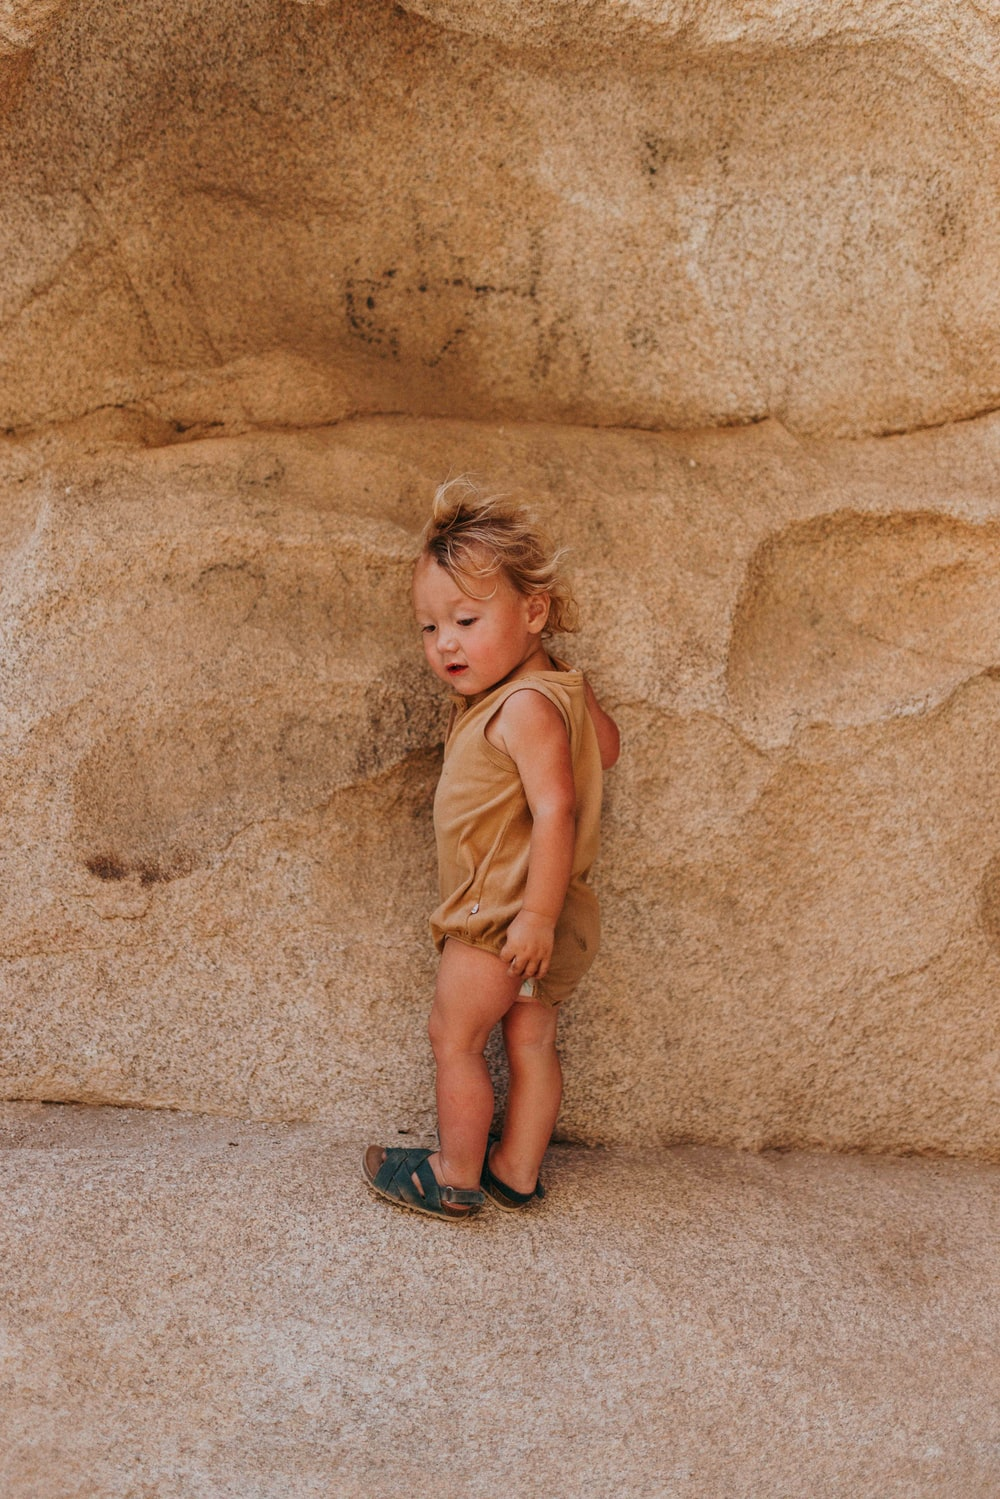 girl in brown sleeveless dress sitting on brown sand during daytime